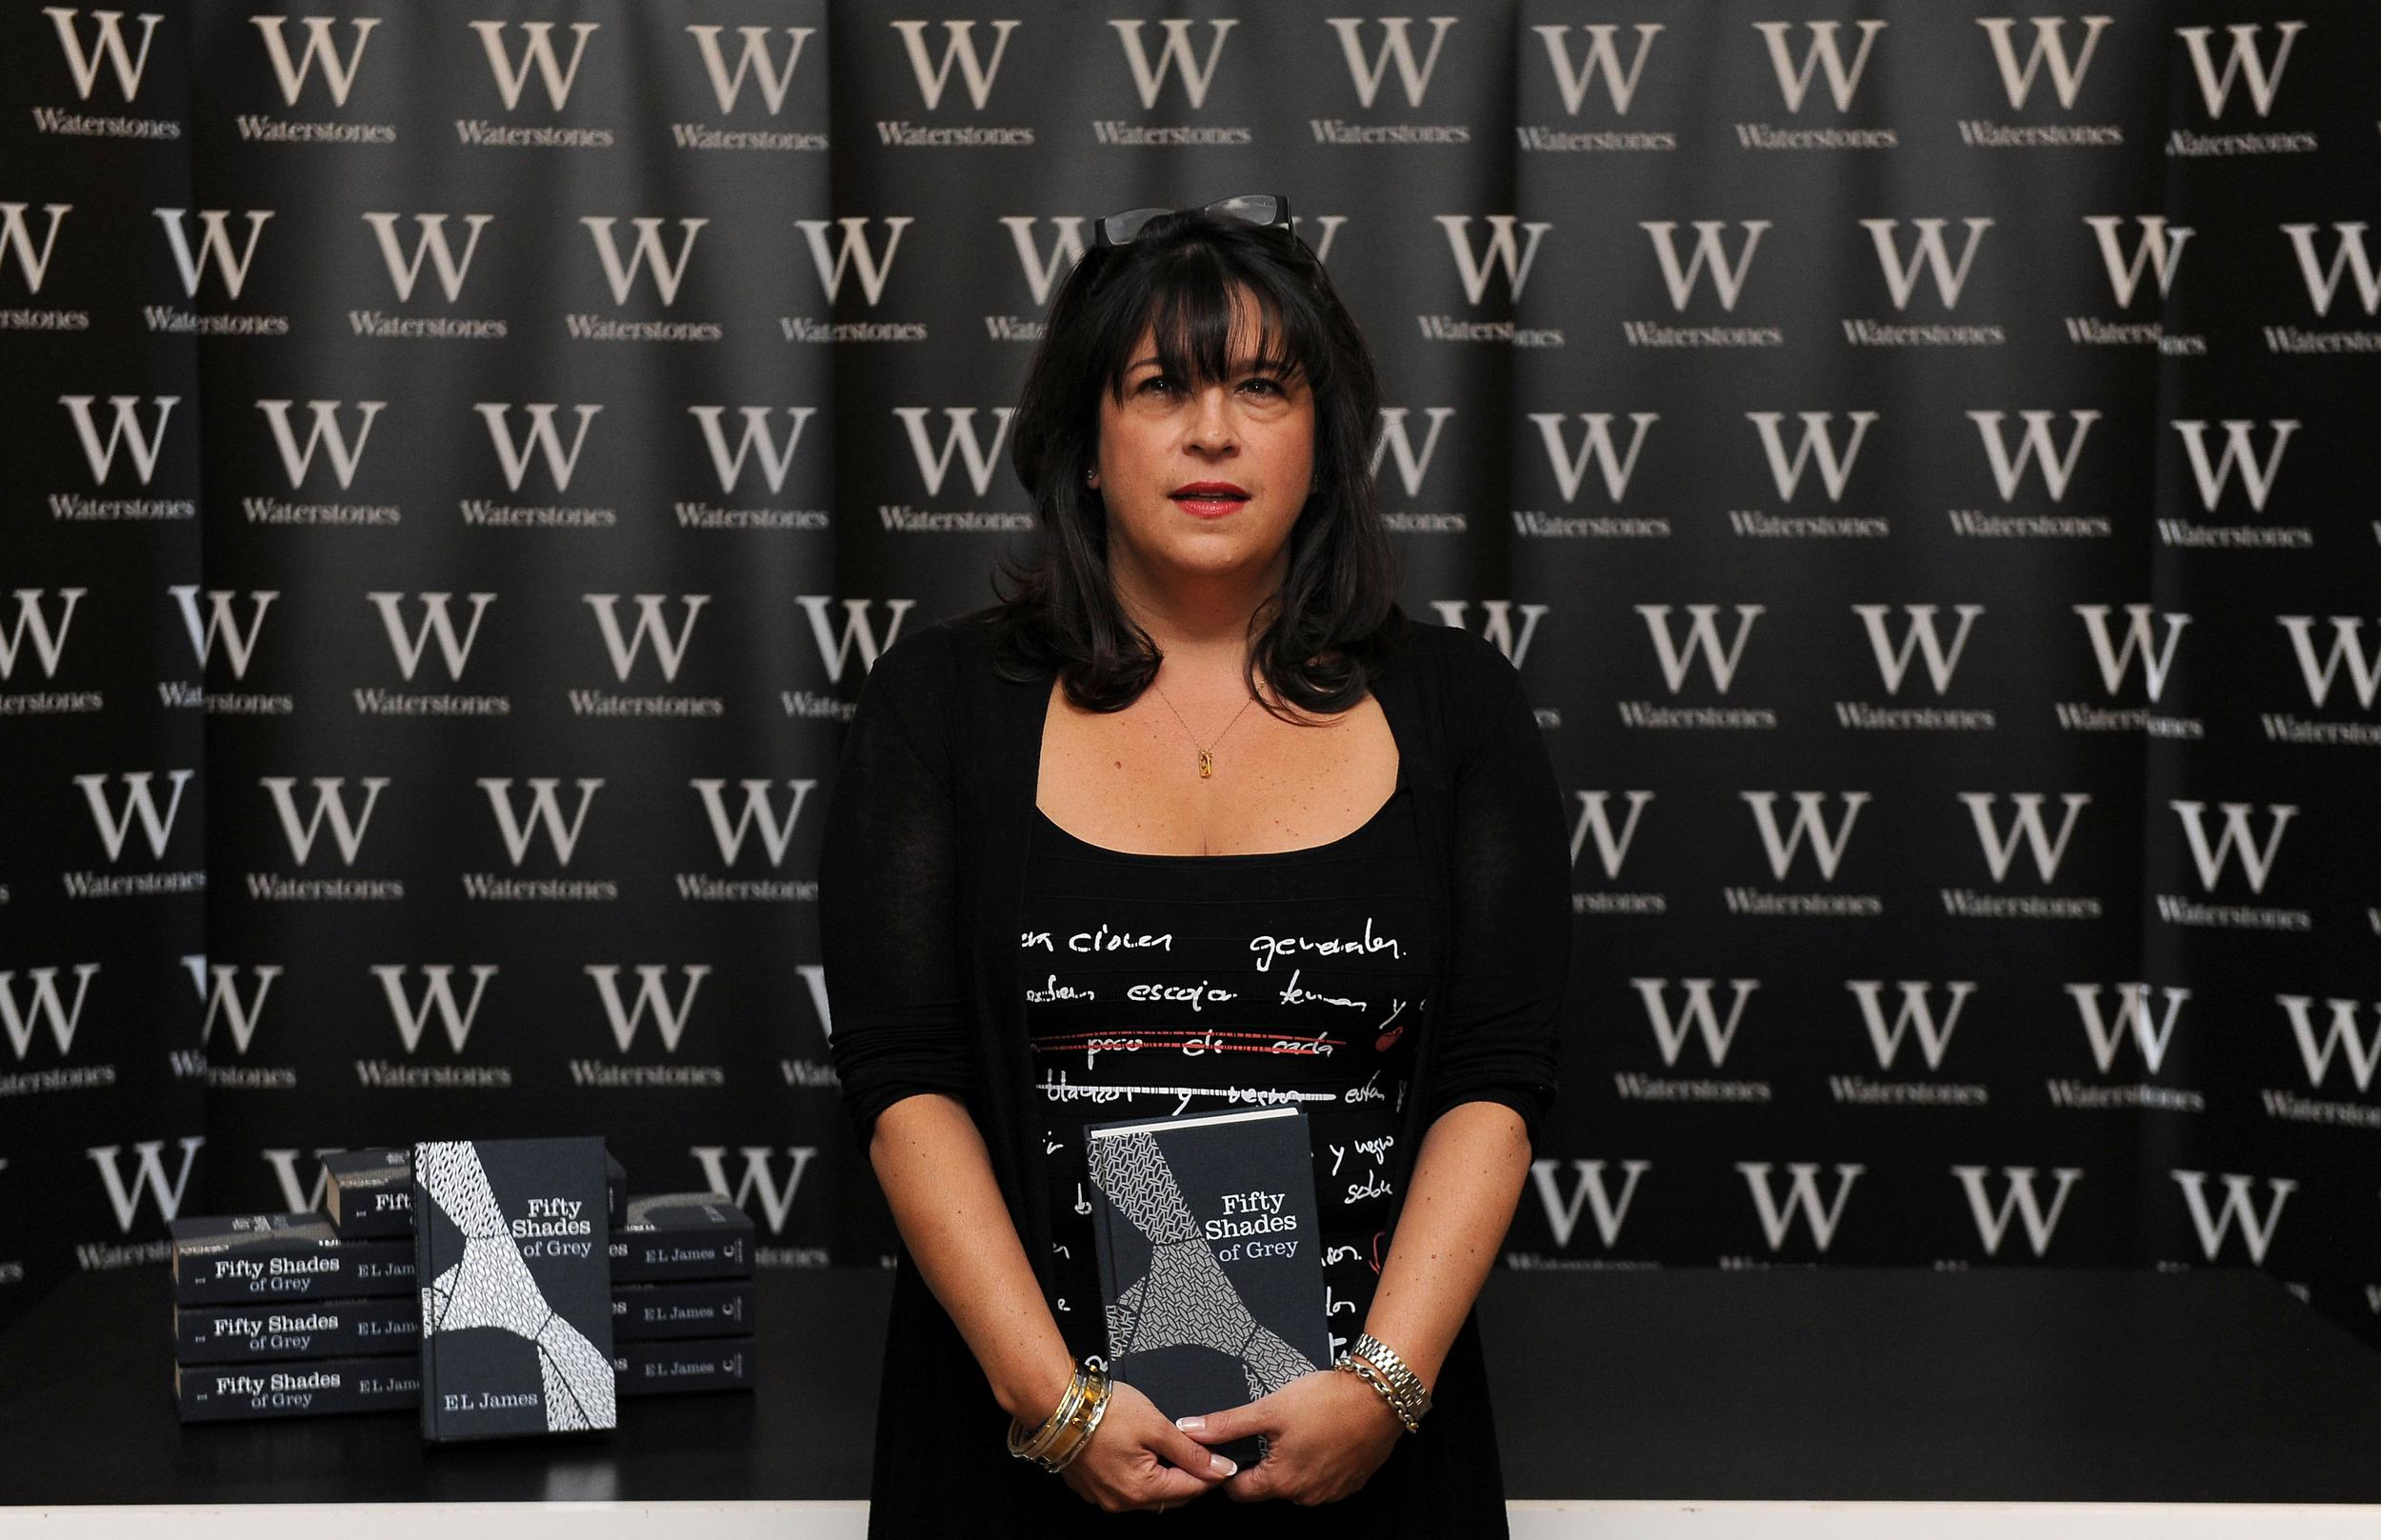 The British 'Shades of Grey' author has faced harsh criticism for her writing style, but she is living proof that sex sells (70 million copies worldwide and counting). With earnings of $95 million this year she's not only the highest-earning author of the year, she's the third-highest-earning celebrity too.